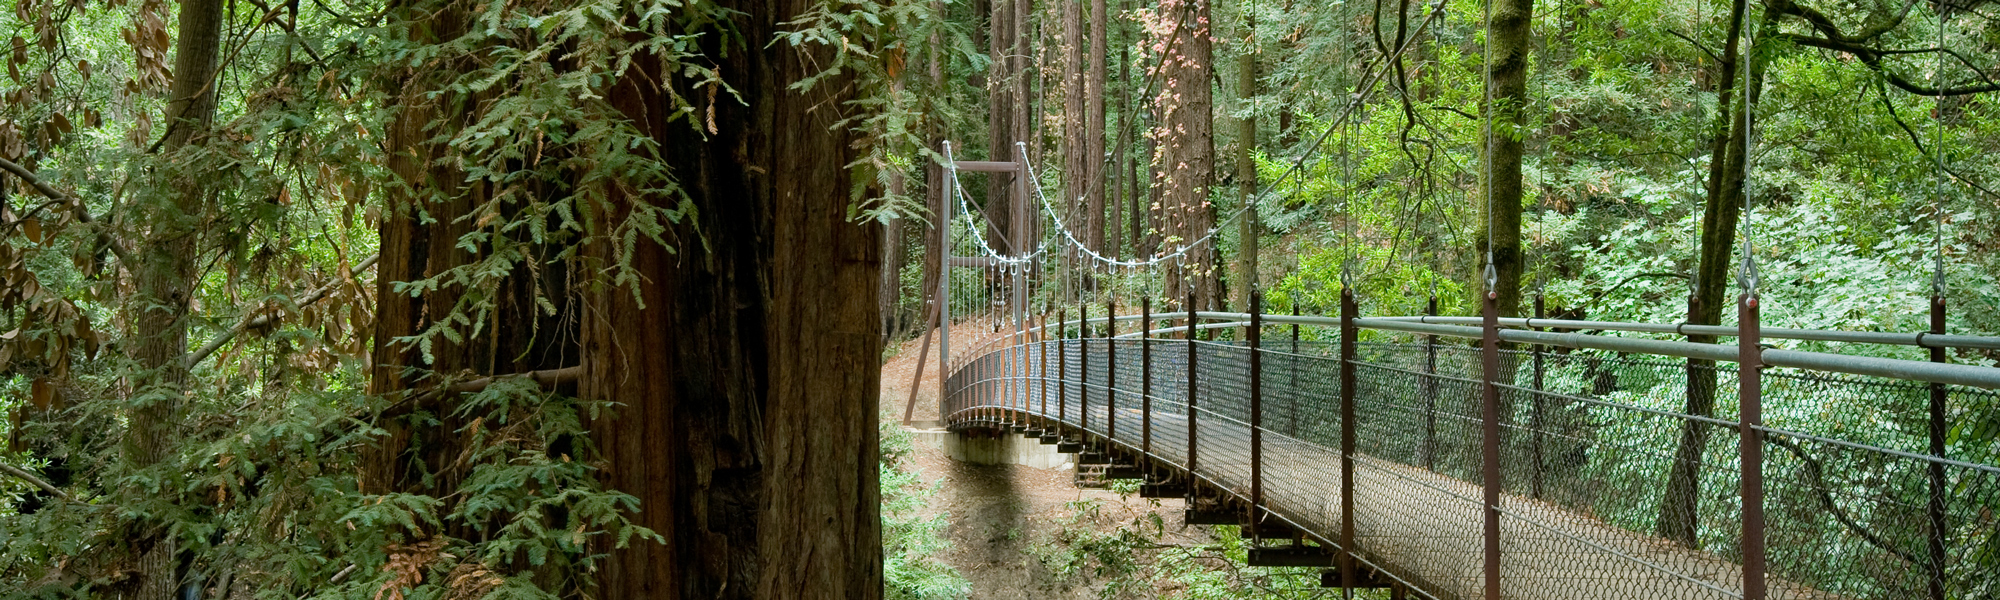 Redwood Bridge